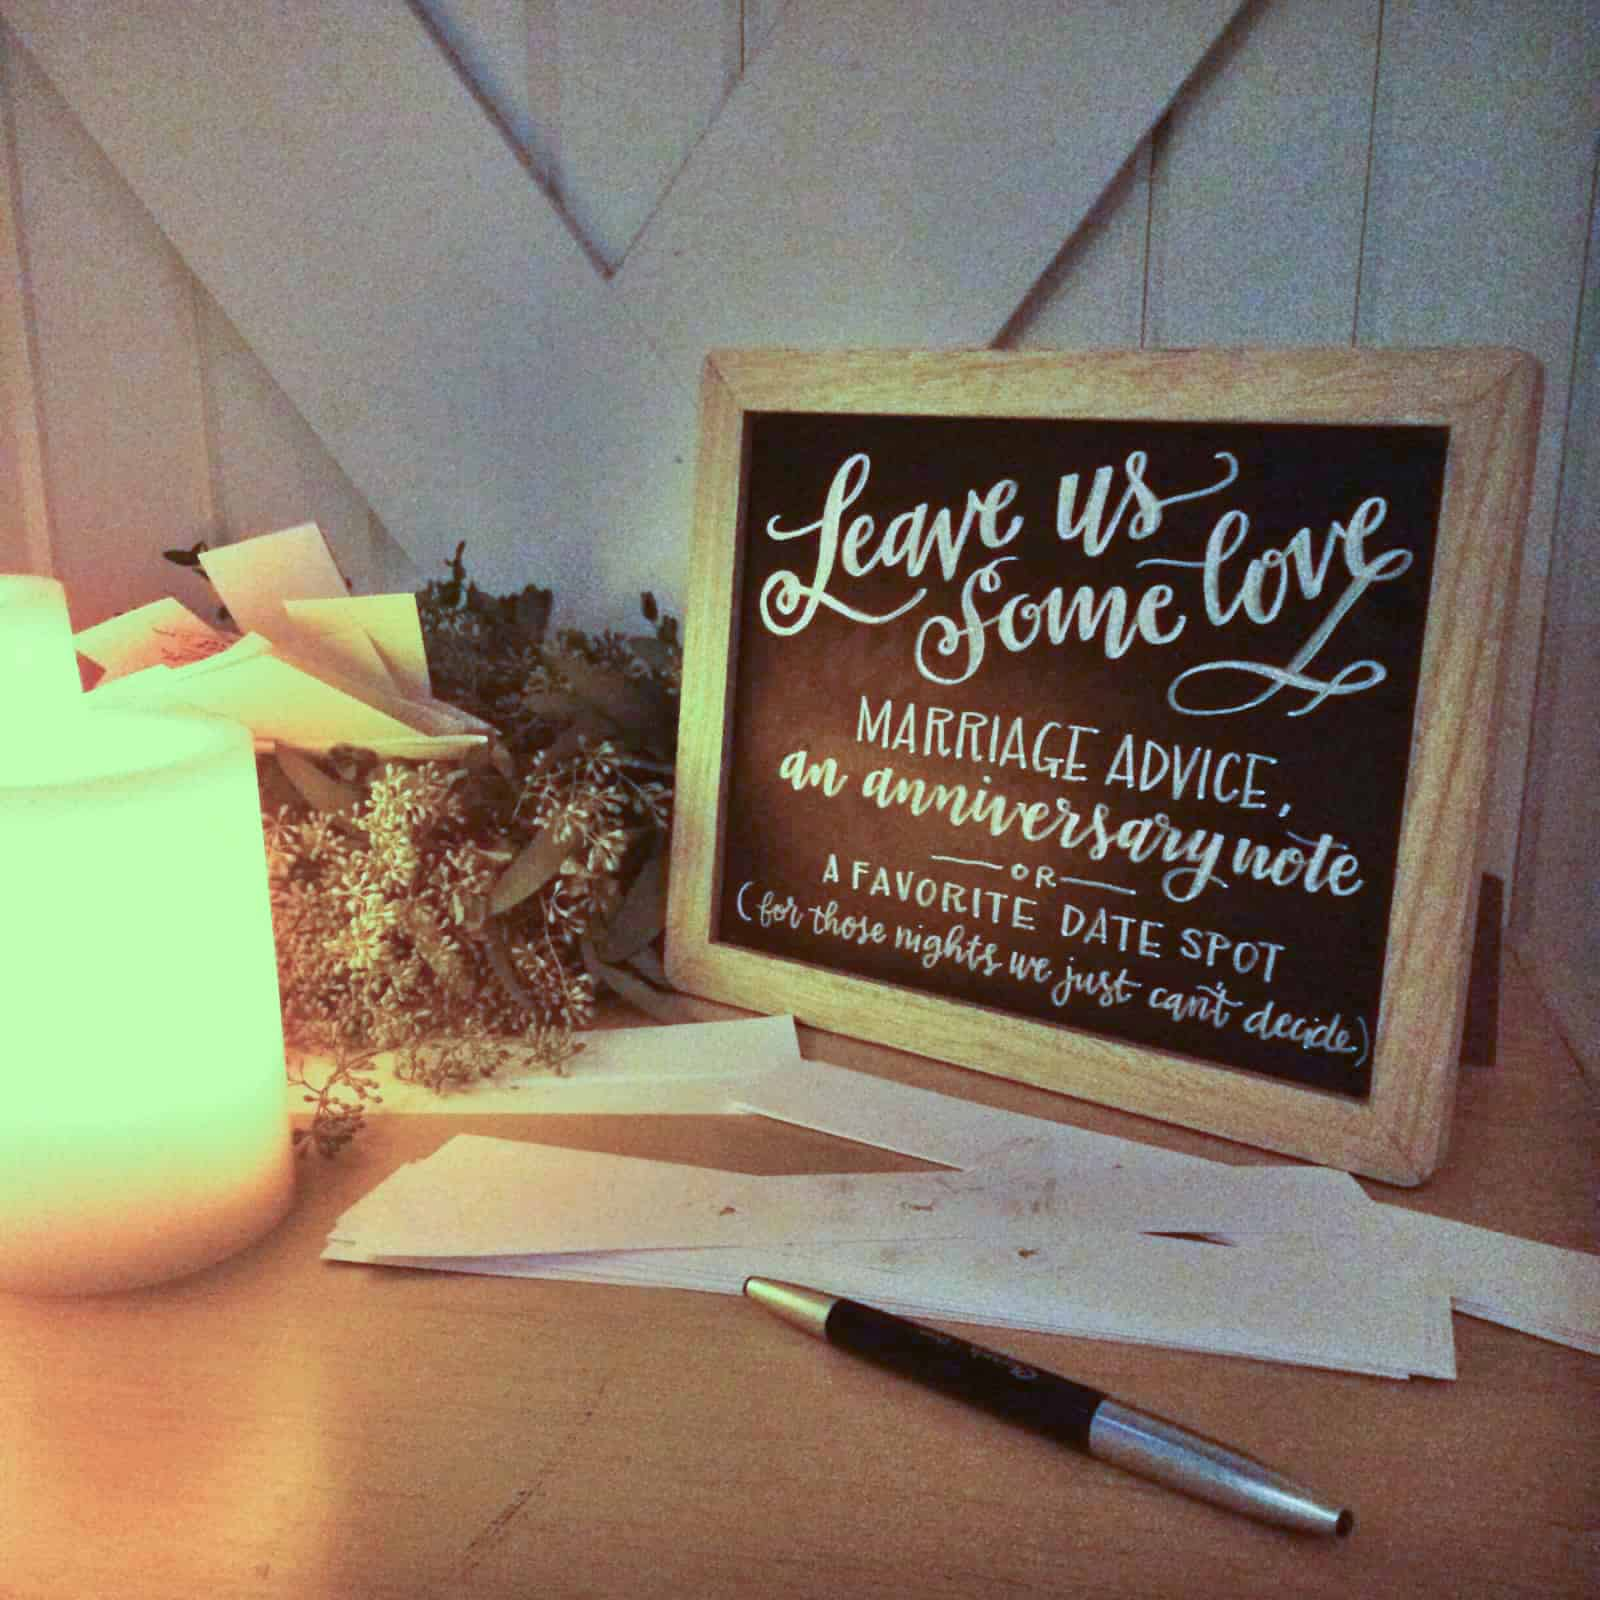 Lombardi-House-Wedding-Leave-Love-Sign-2.jpg